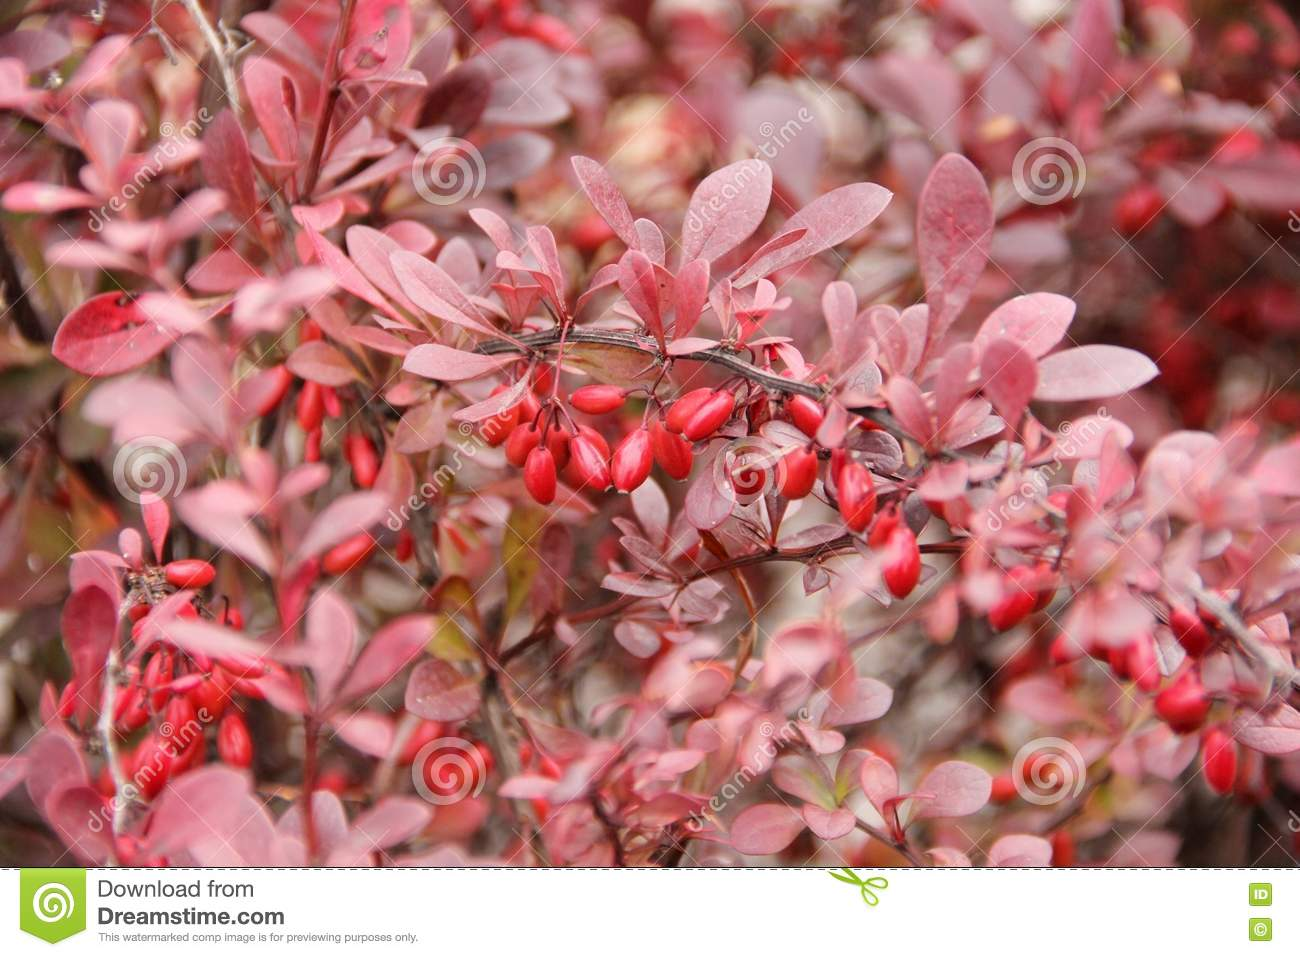 Thorny Shrub With Red Leaves And Berries Stock Image Image Of